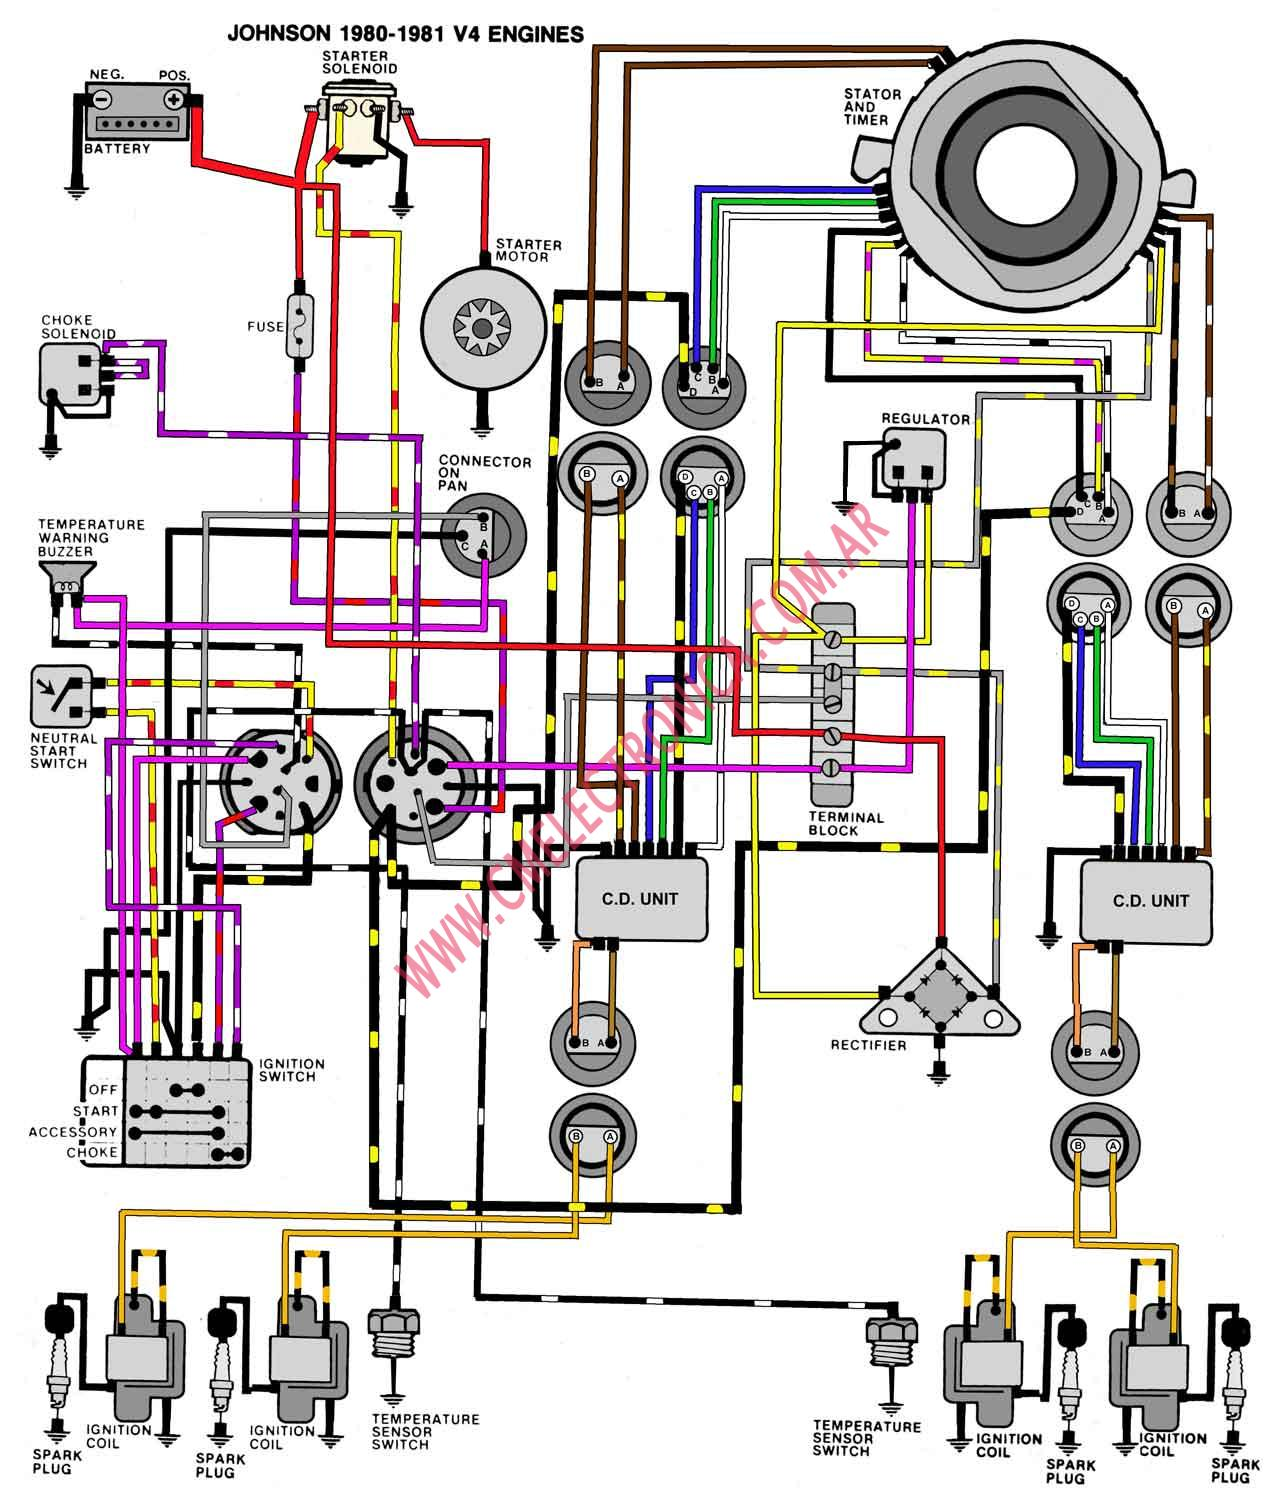 85 Hp Johnson Wiring Diagram List Of Schematic Circuit 1978 Outboard 81 Evinrude 85hp Trim Solenoid Real U2022 Rh Powerfitnutrition Co 1973